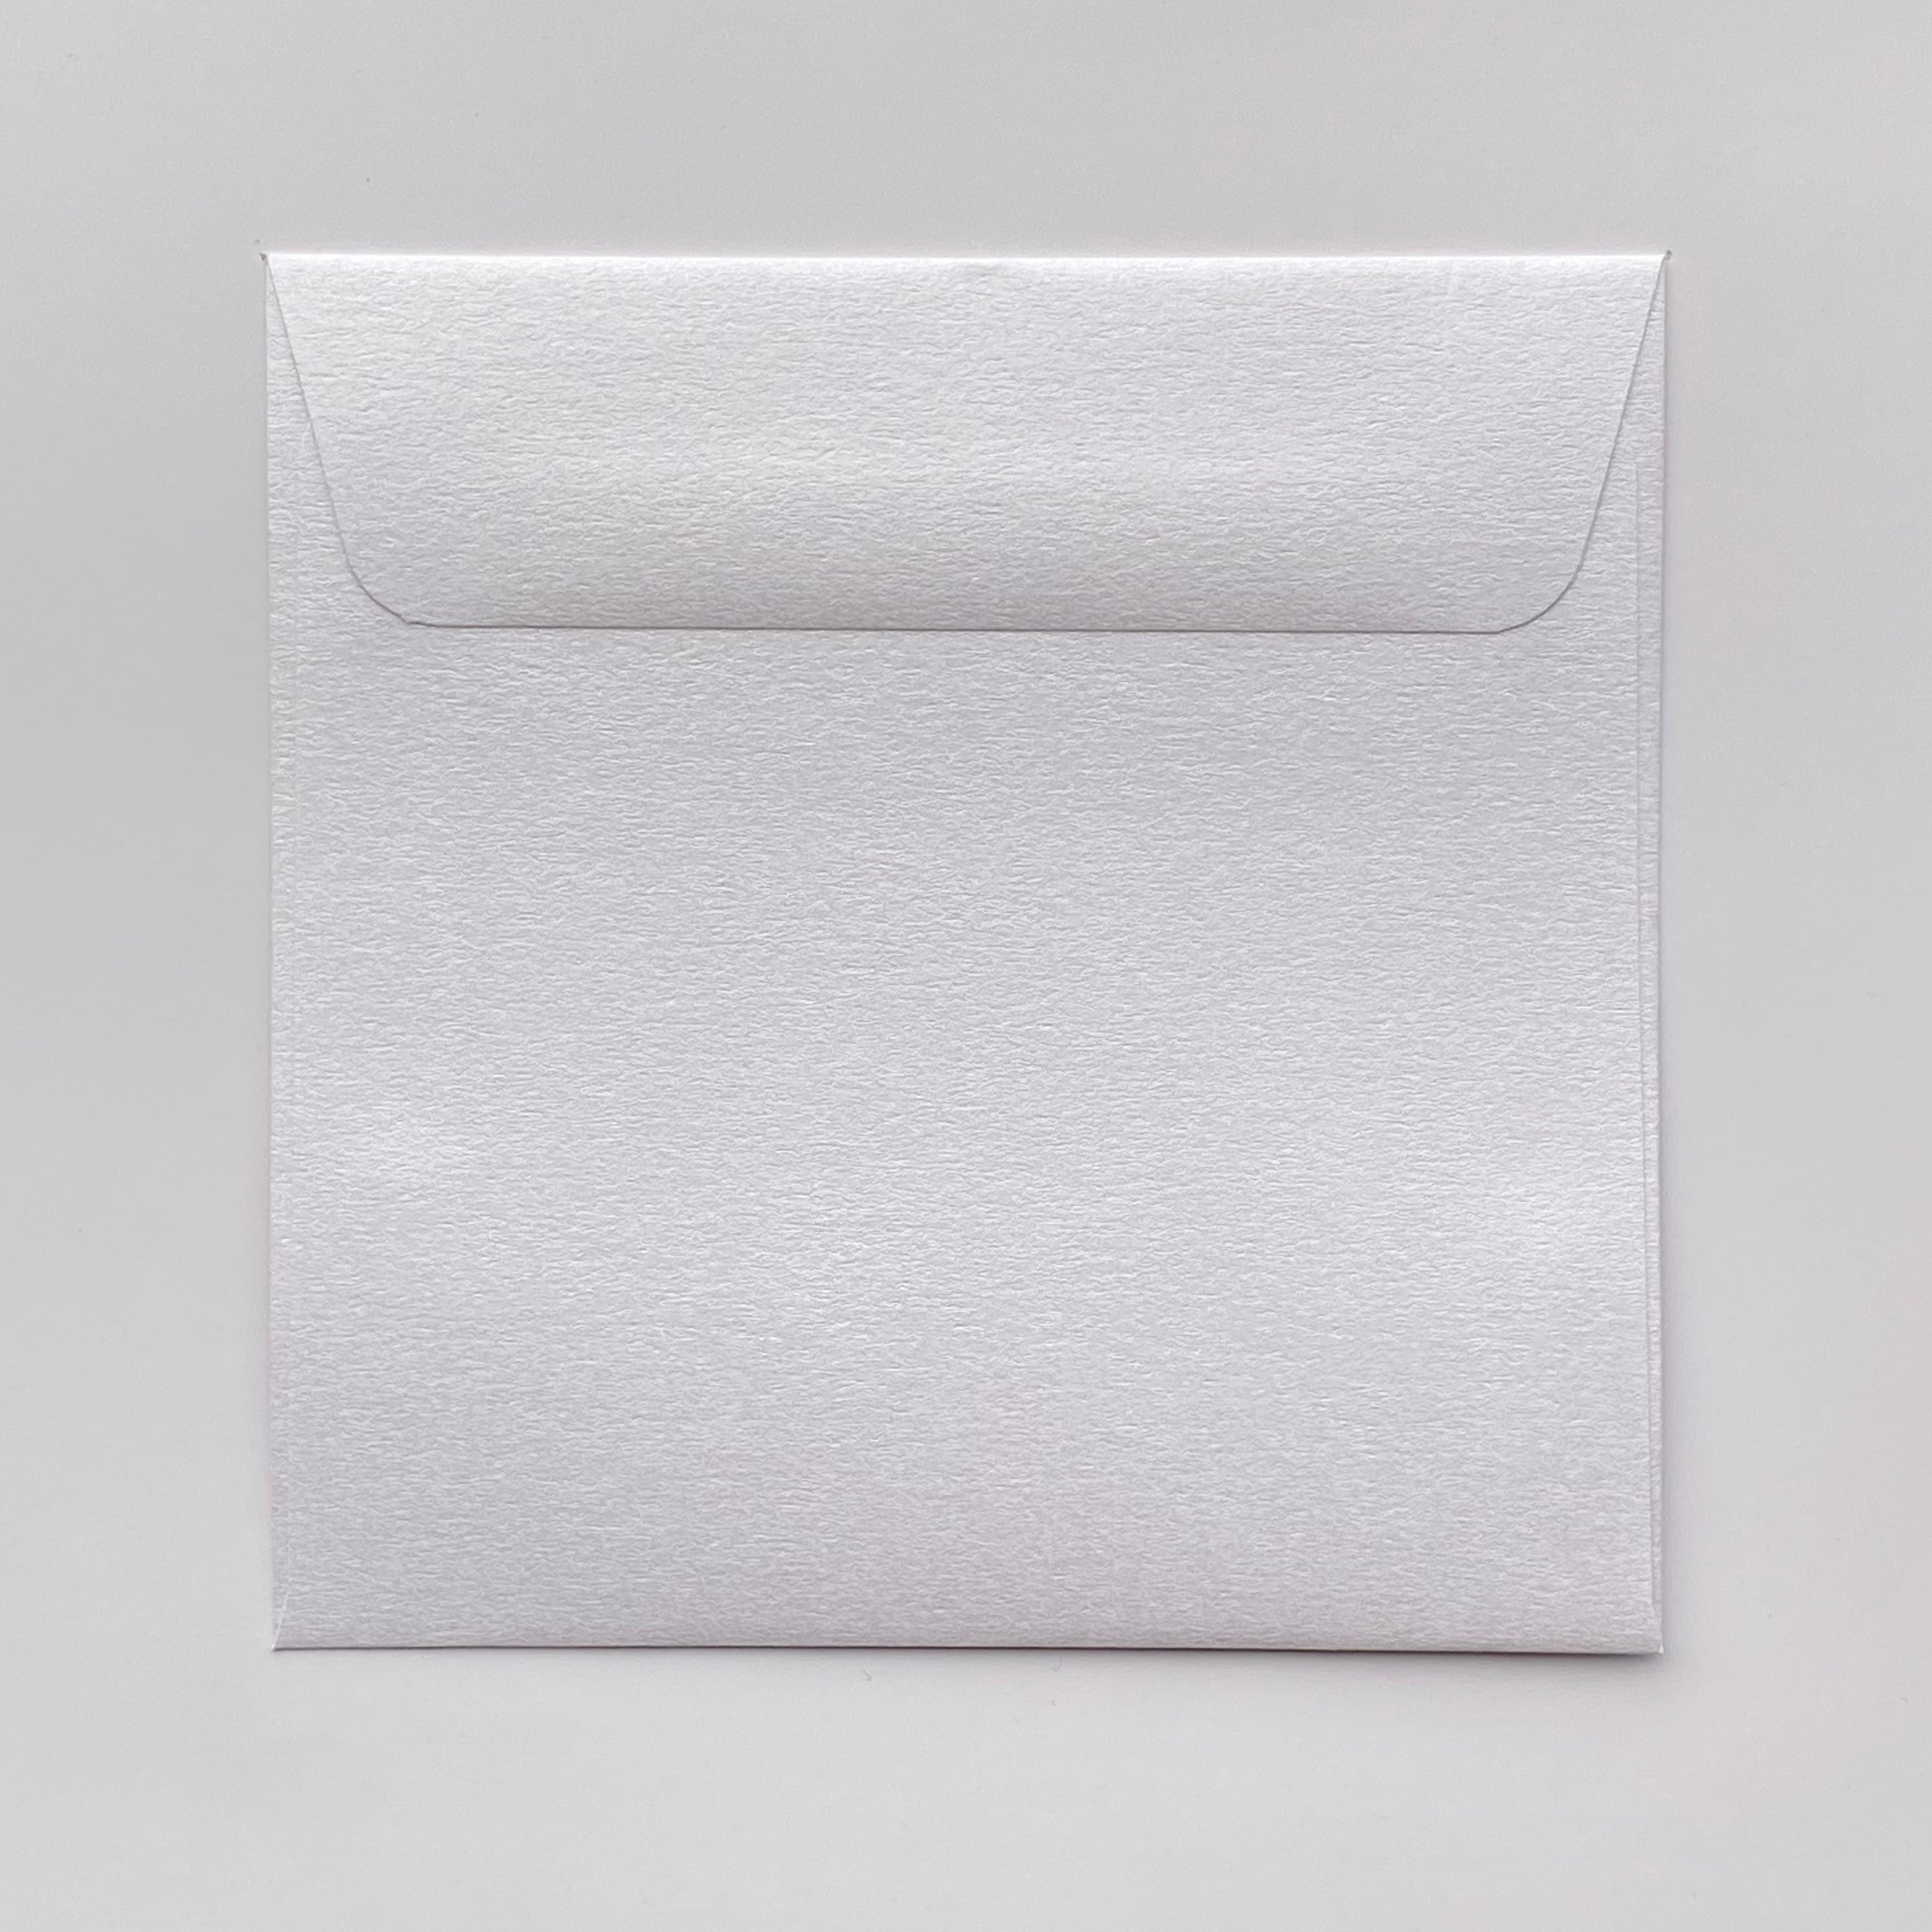 155mm square metallic envelopes